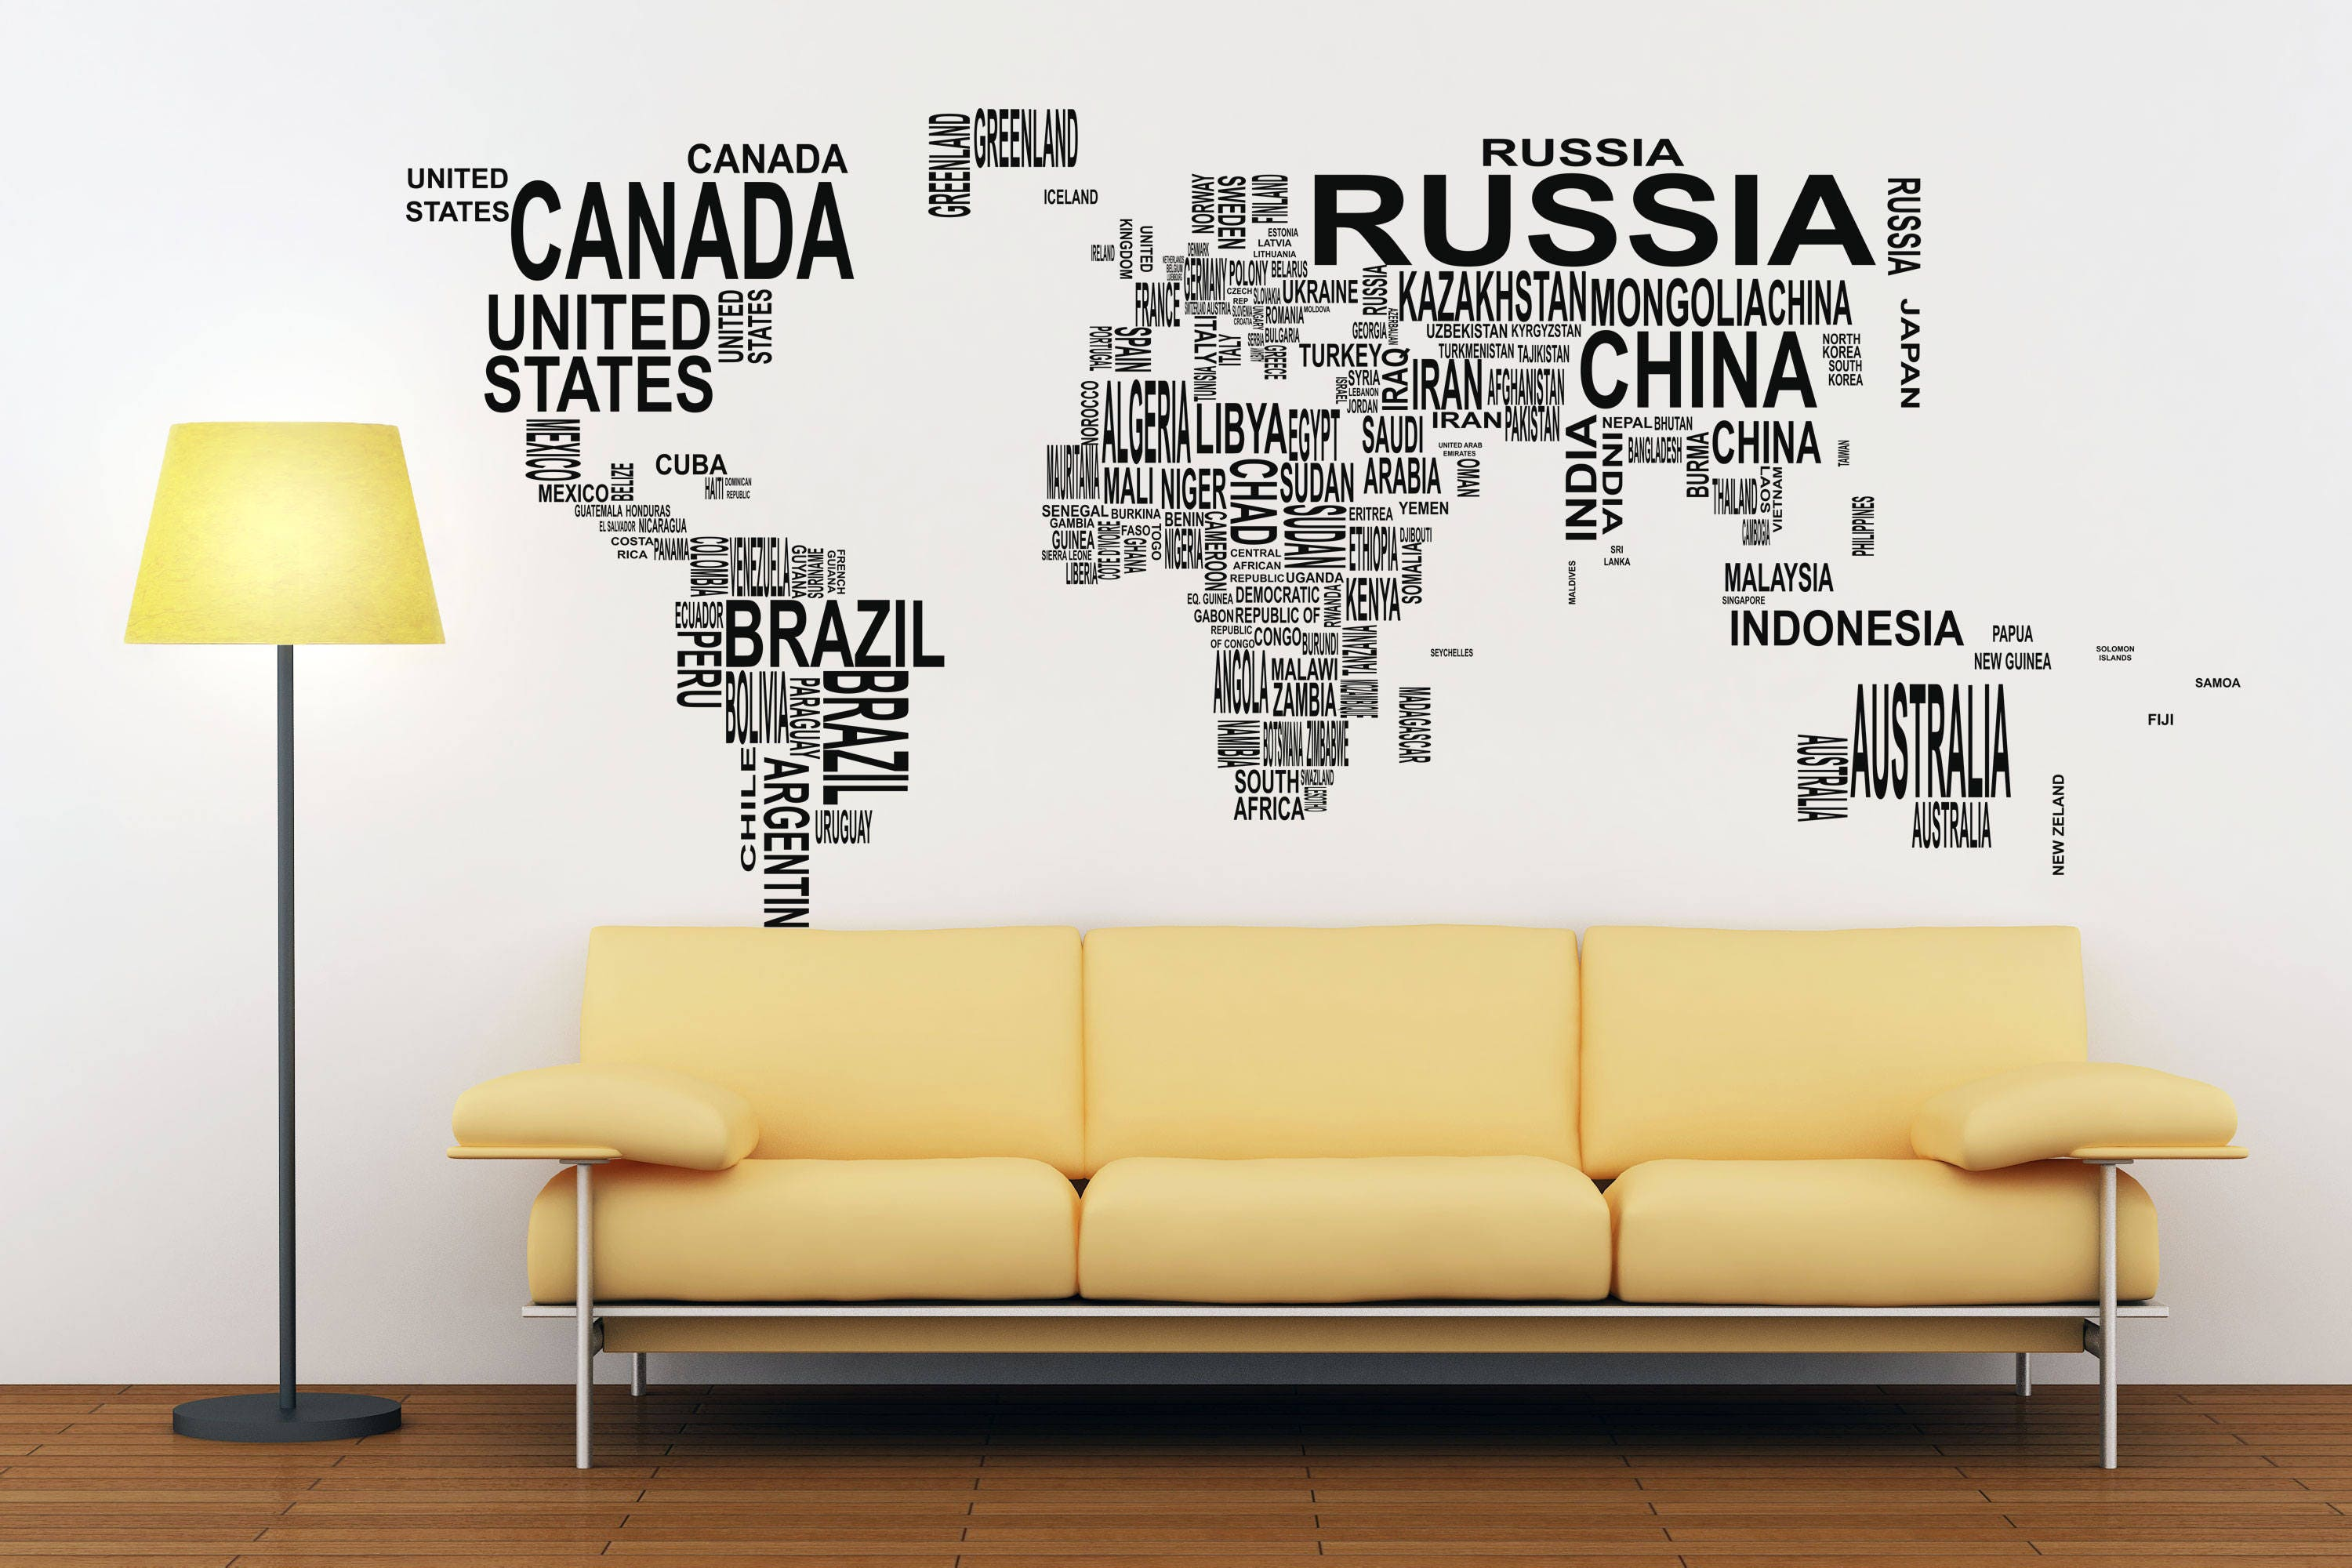 Typography world map decals for home decor lettering usa typography world map decals for home decor lettering usa france germany italy europe africa australia america russia asia china japan gumiabroncs Images